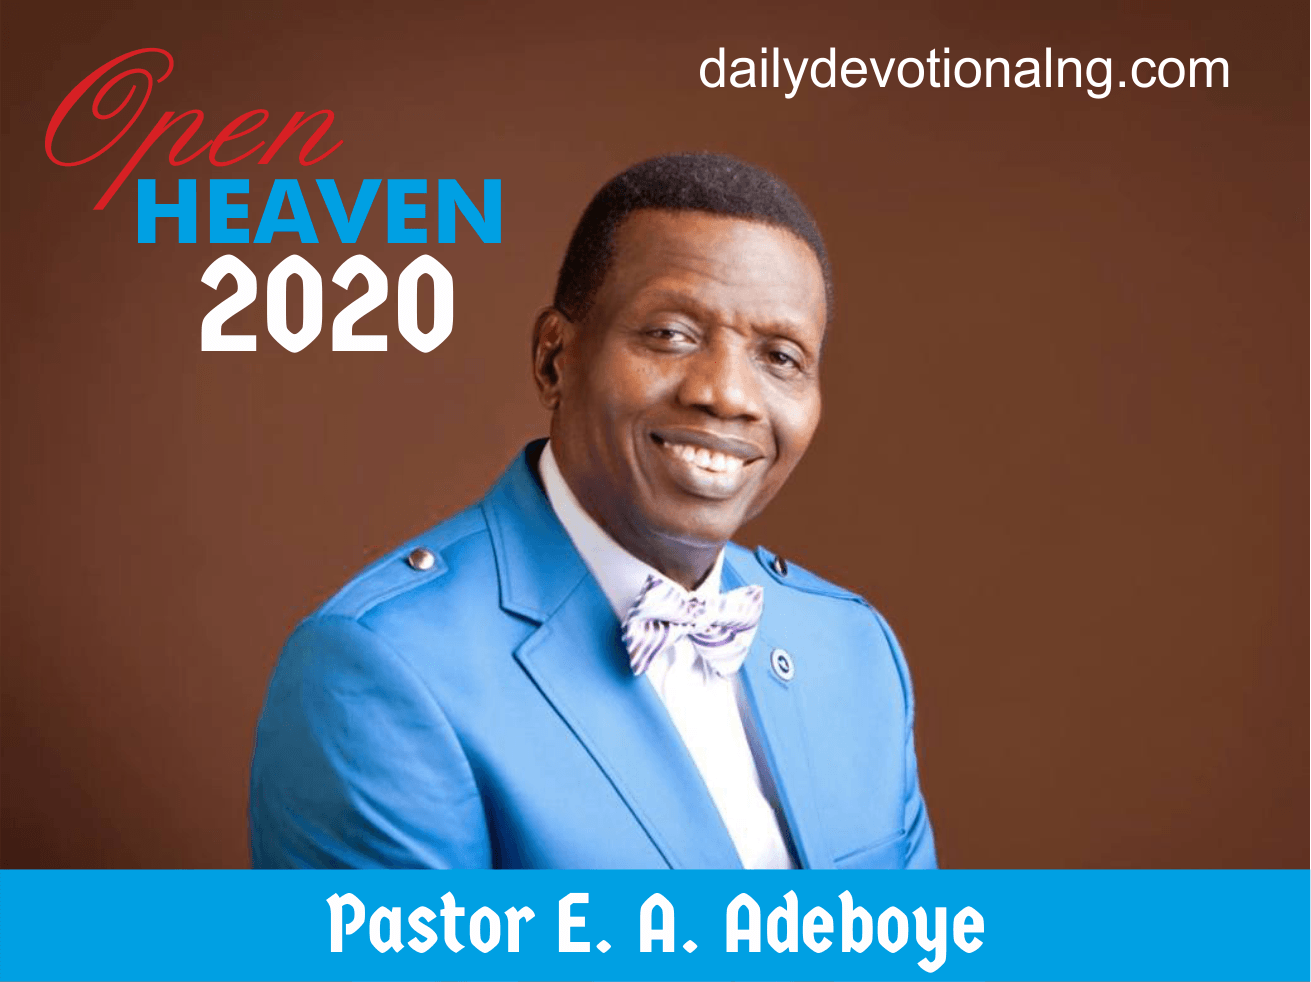 Open Heaven 5th October 2020 Devotional, Open Heaven 5th October 2020 Devotional – Can God Change His Mind? 1, Latest Nigeria News, Daily Devotionals & Celebrity Gossips - Chidispalace